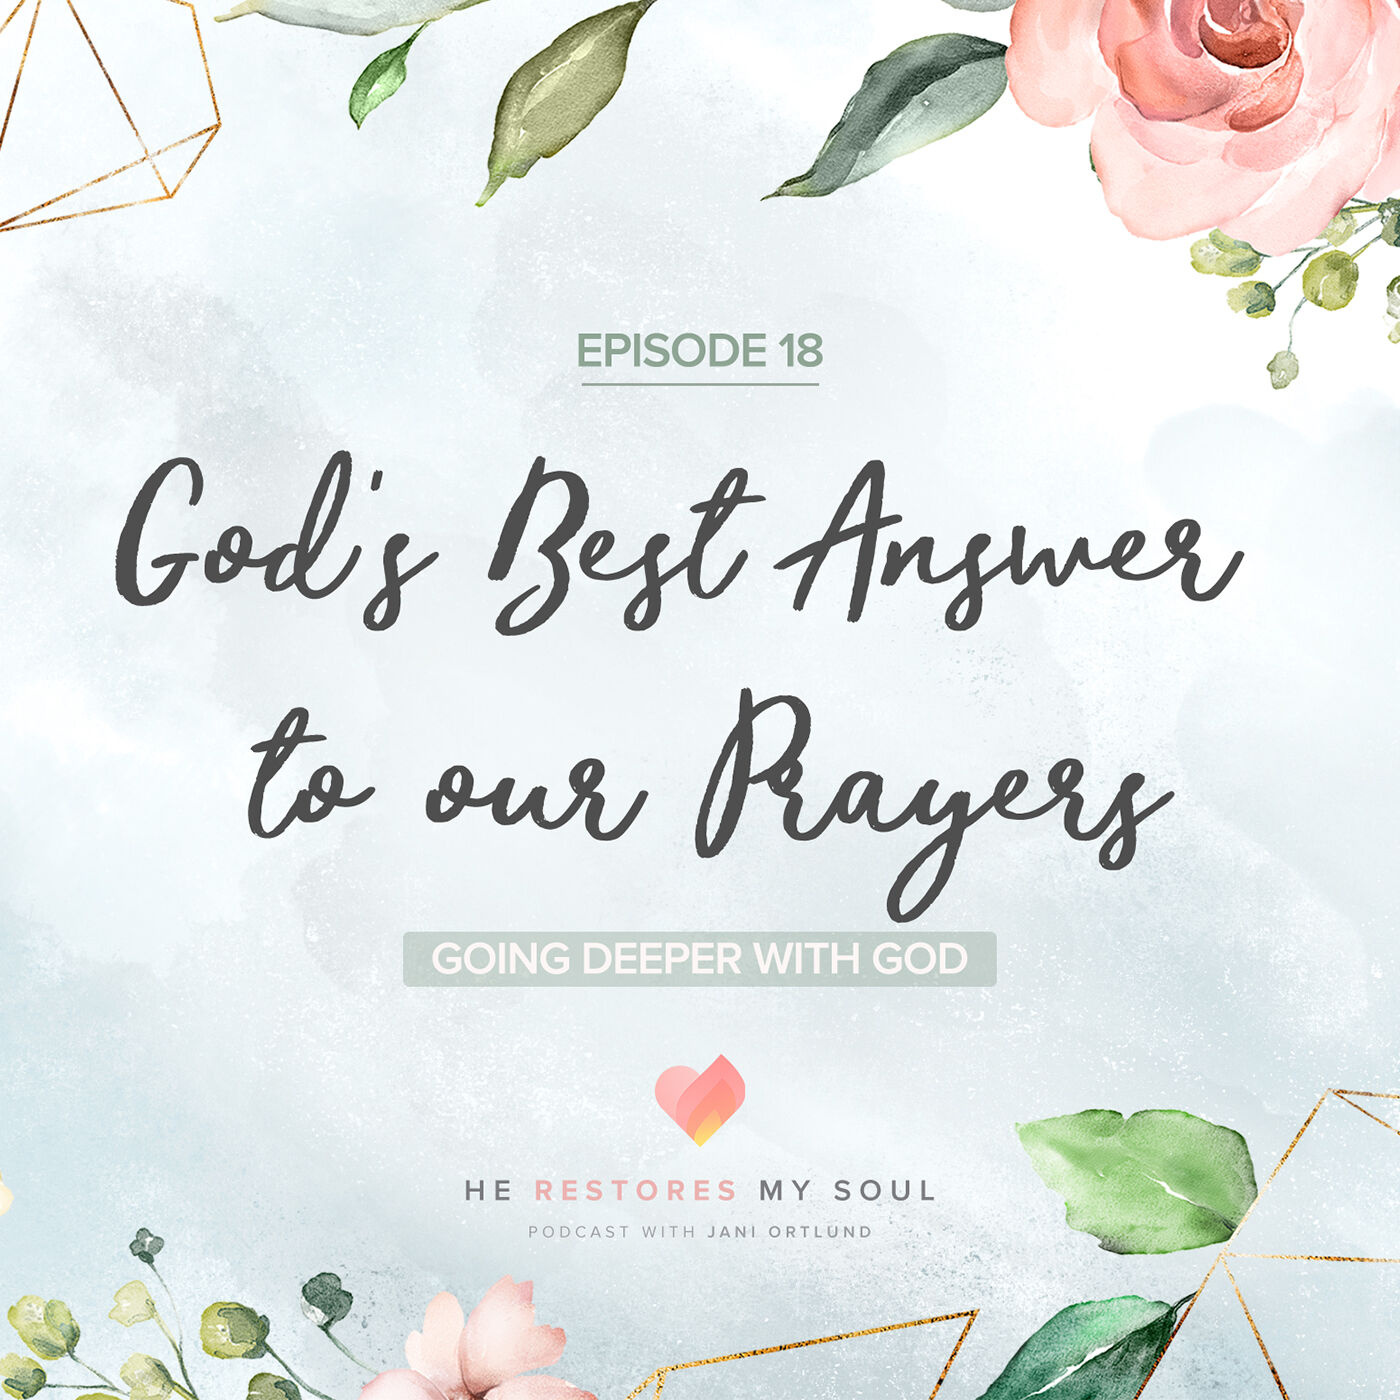 God's Best Answer to our Prayers